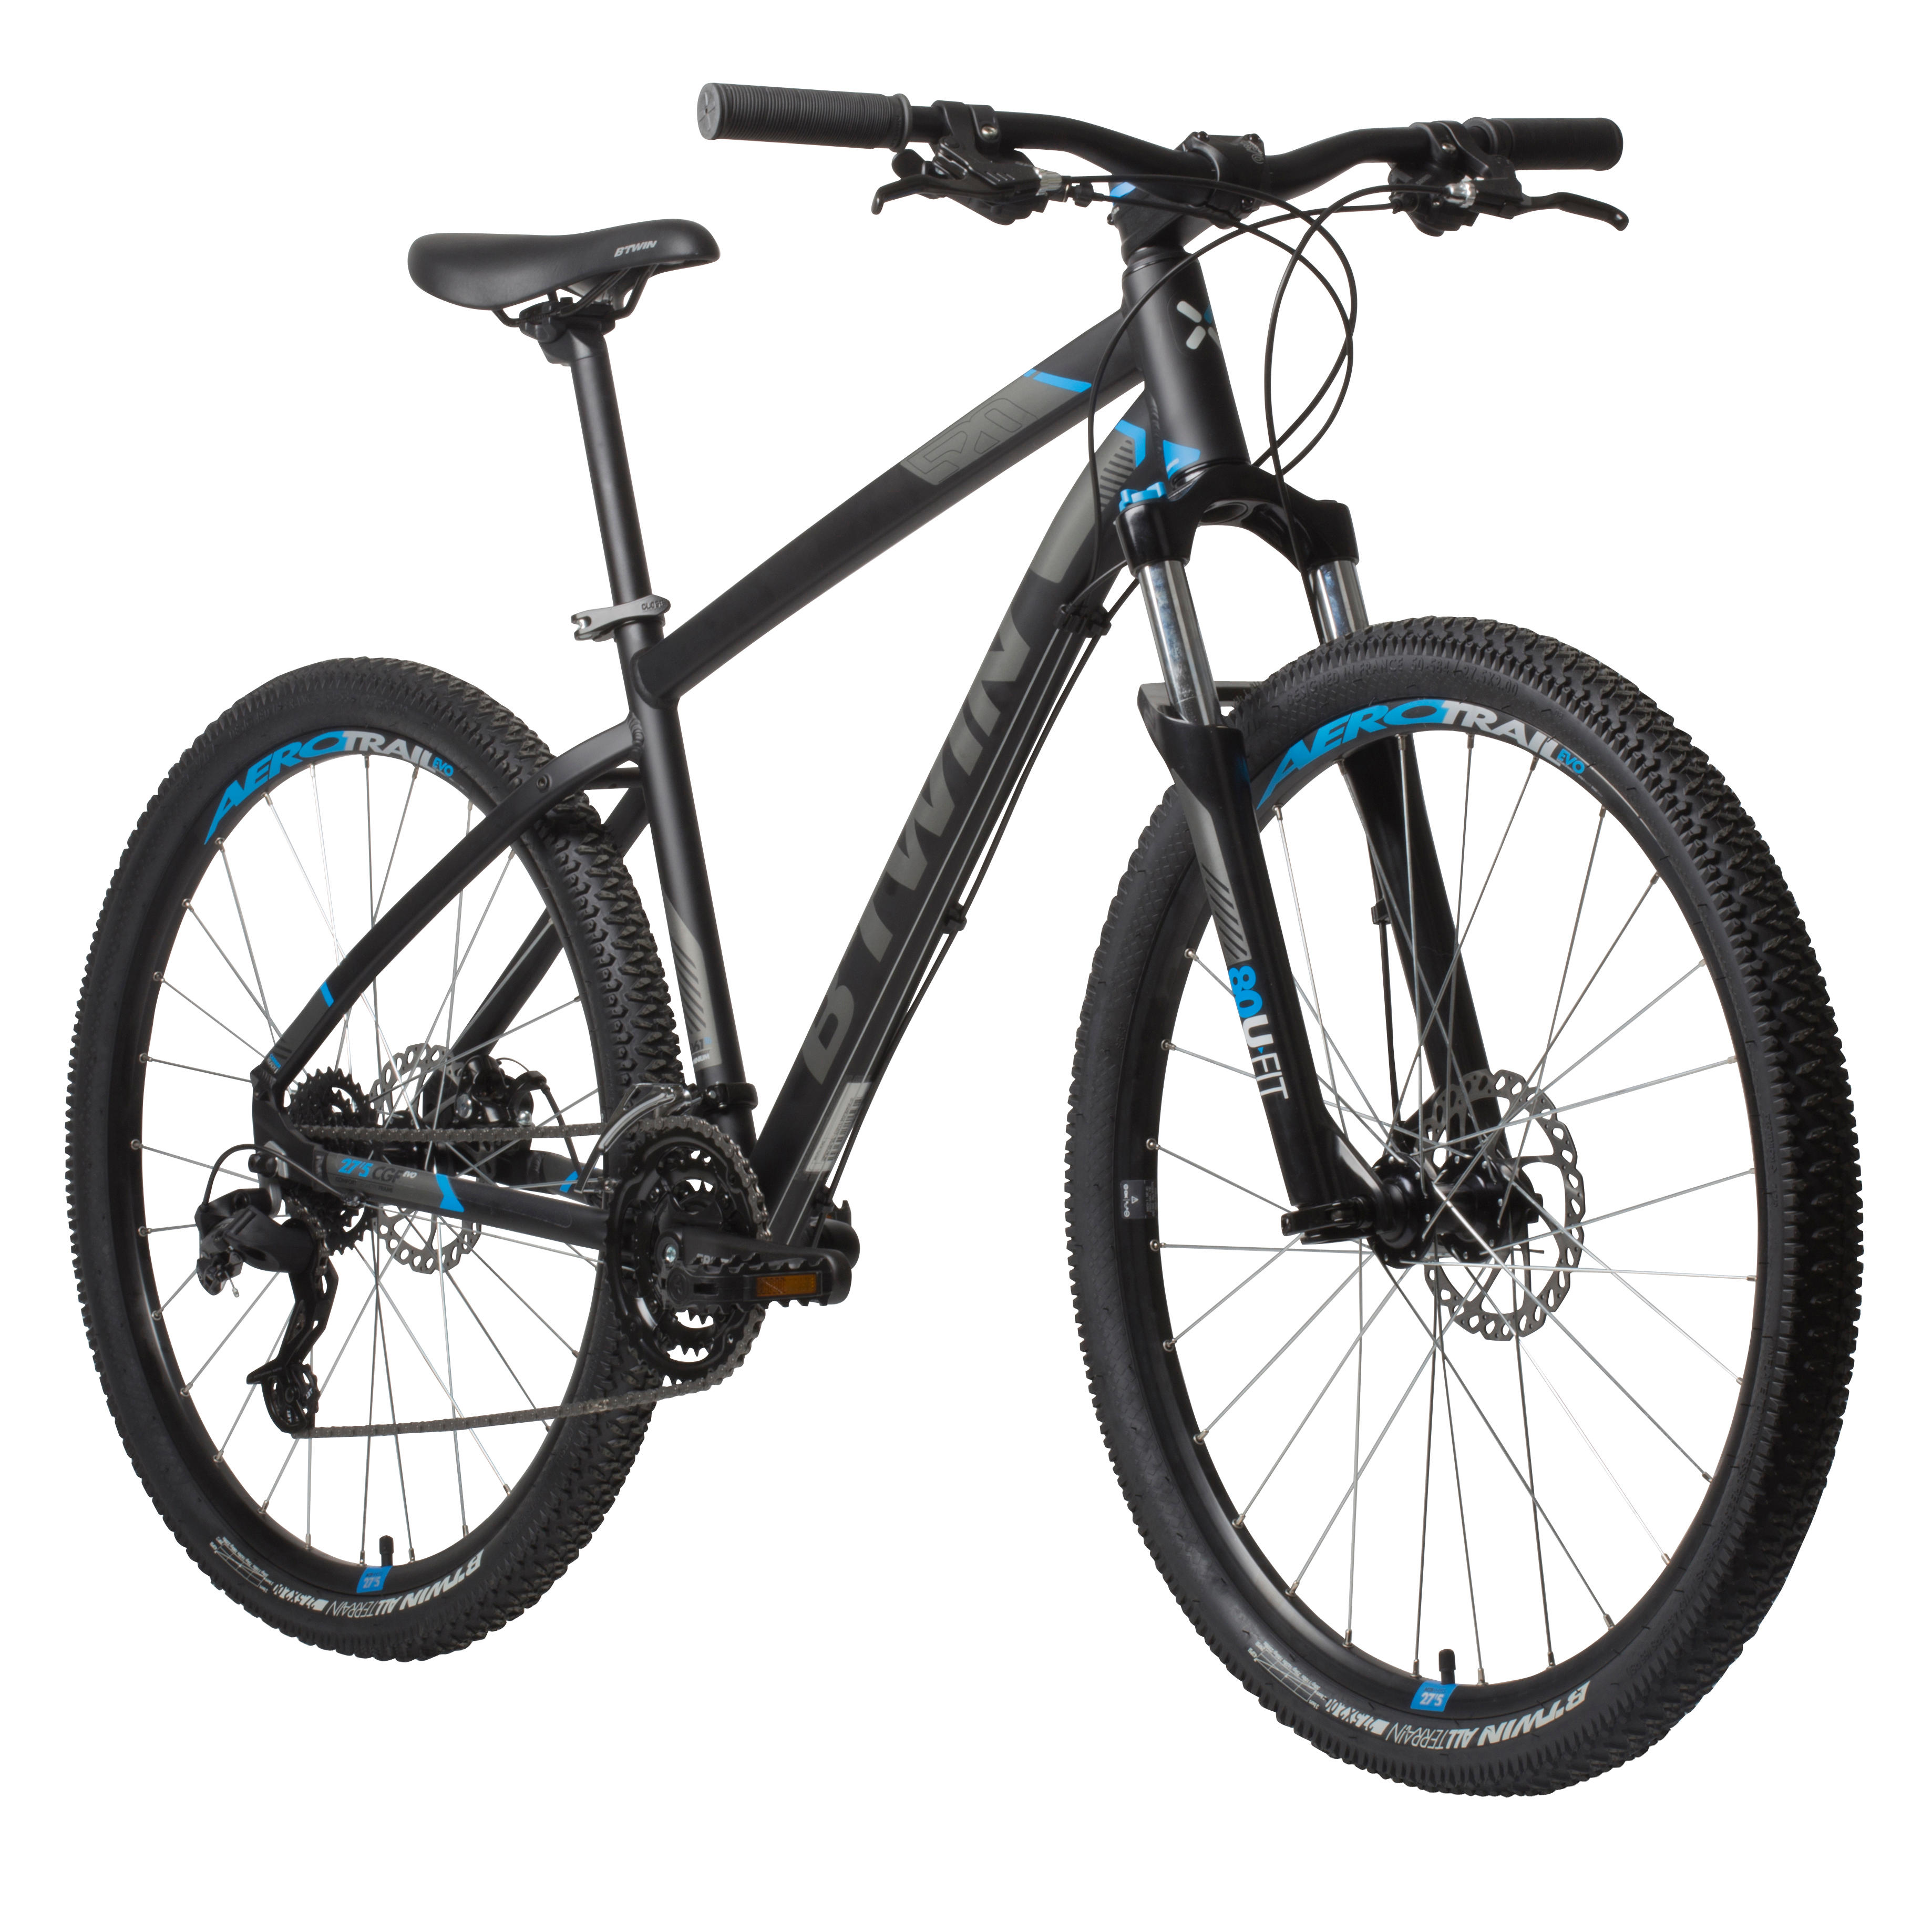 https://contents.mediadecathlon.com/p1108718/rockrider-520-275-mountain-bike-black.jpg